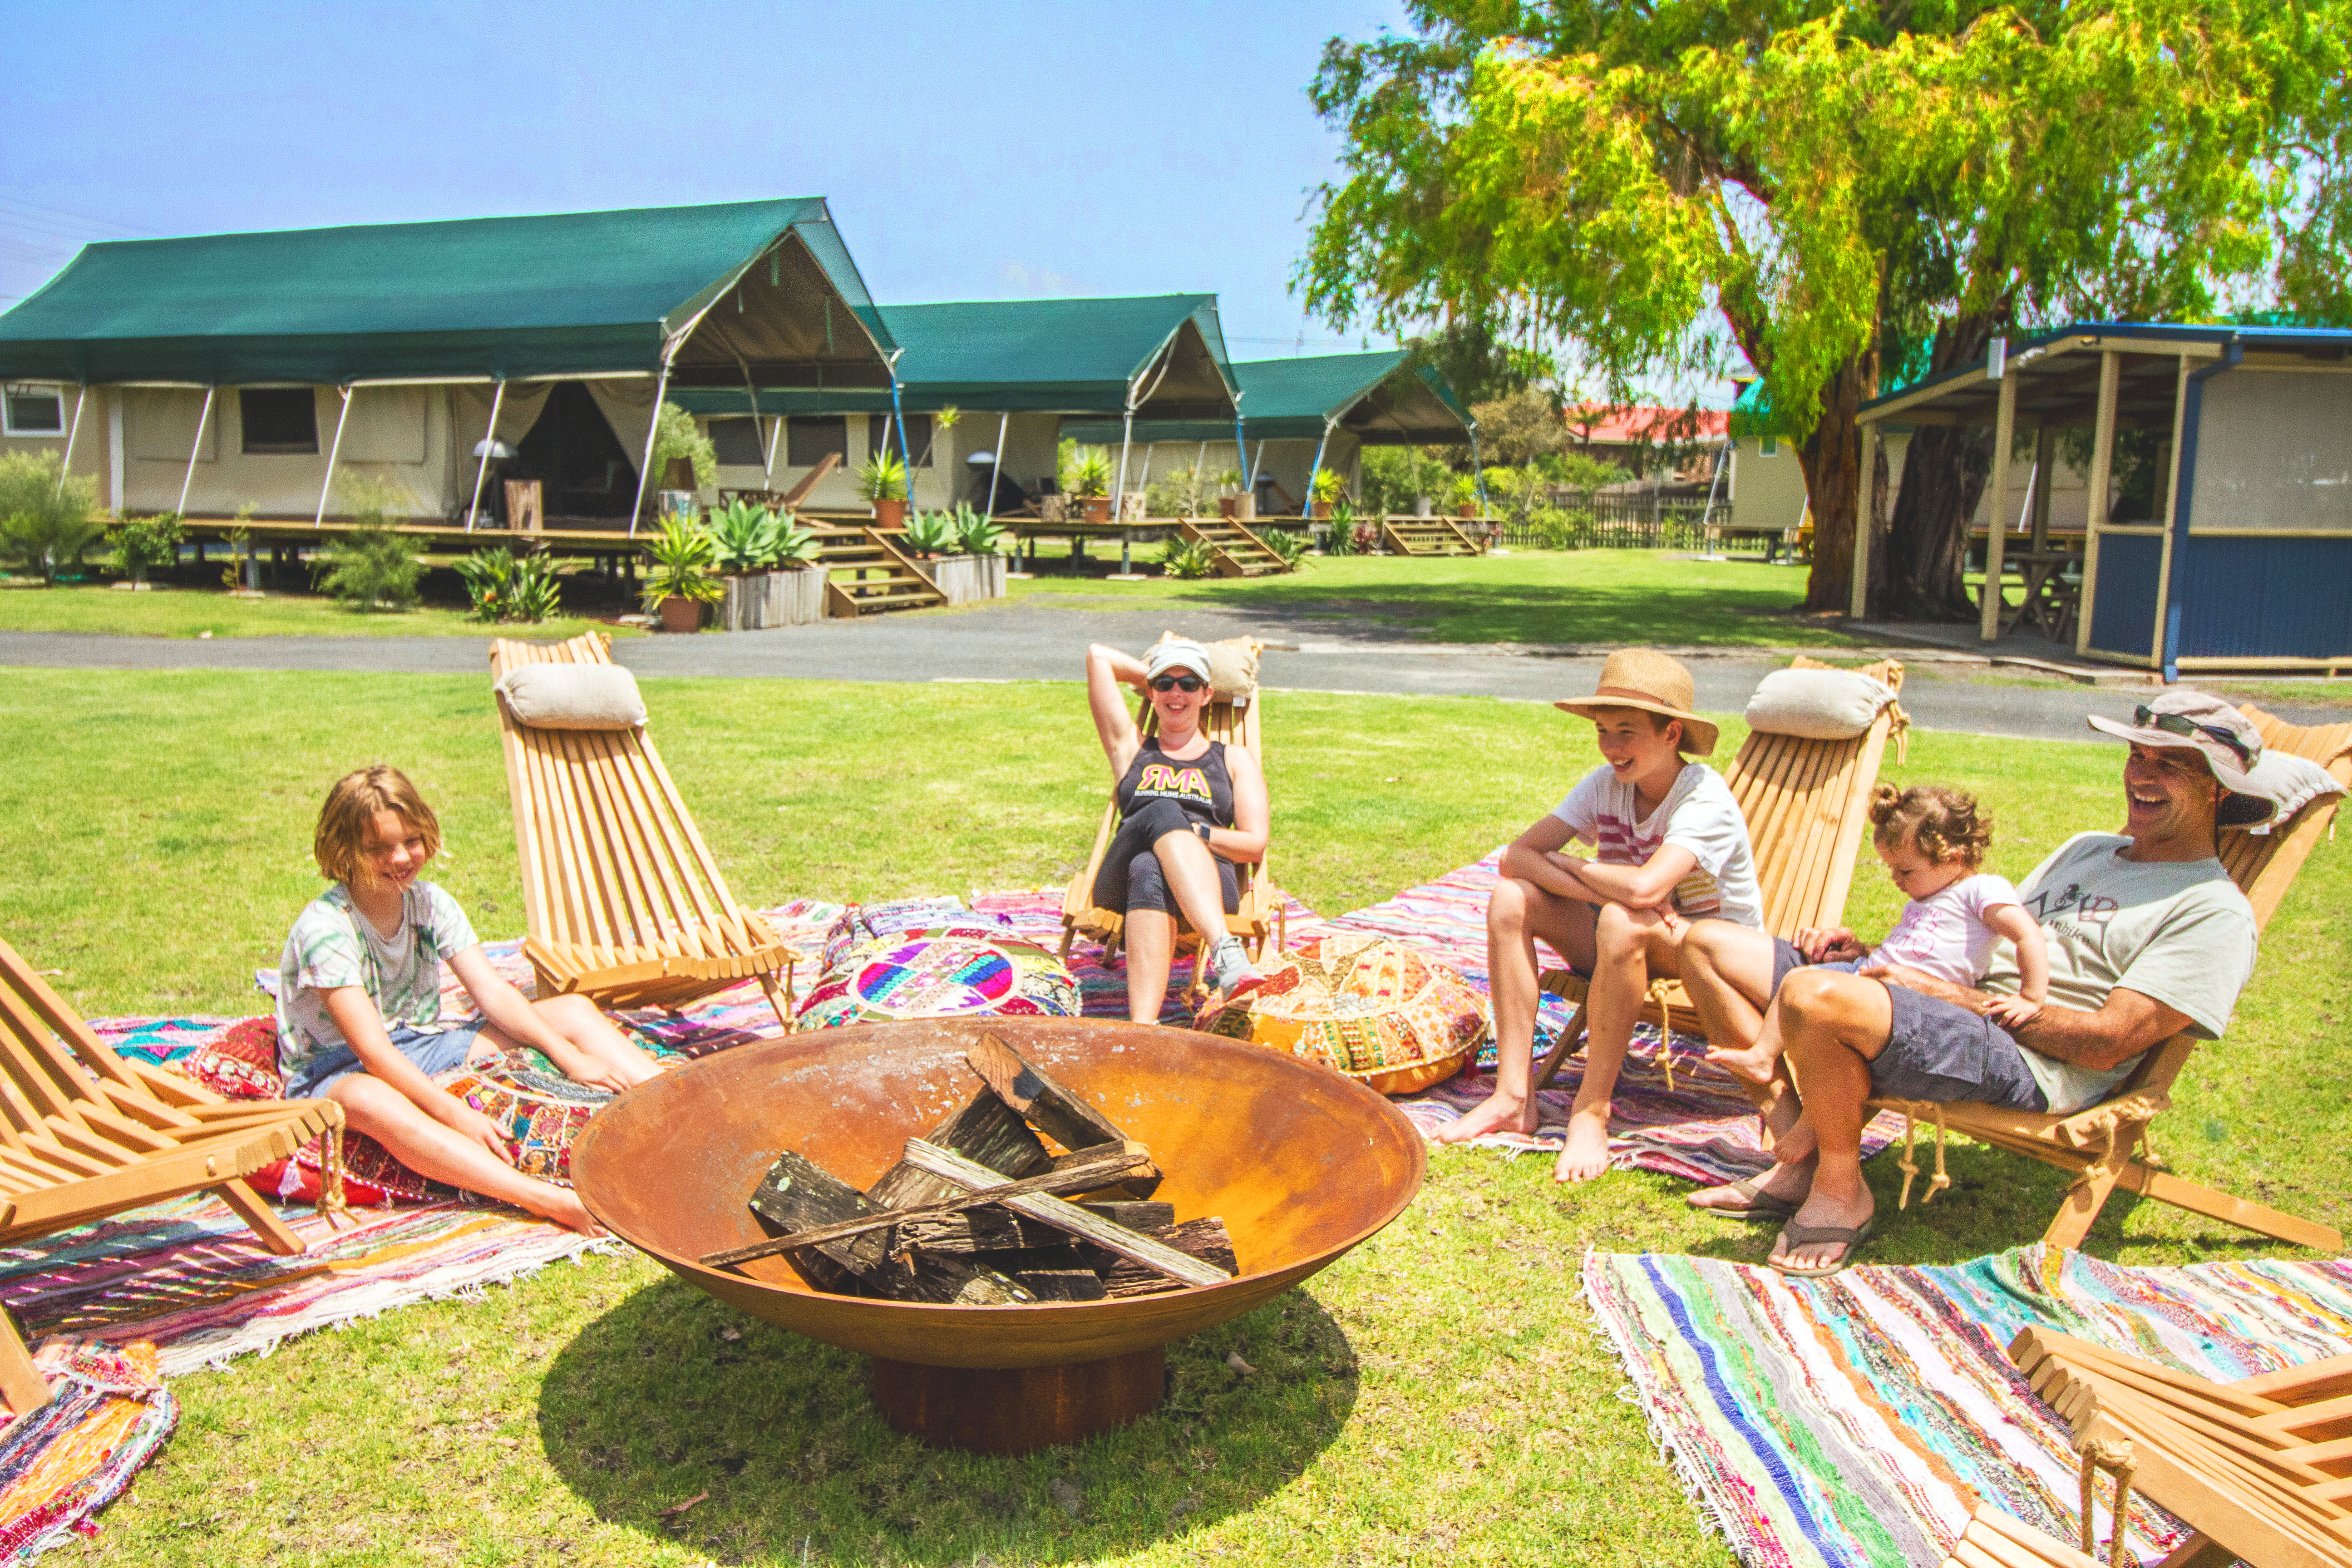 Boat Hire and free bikes for guesta at South Coast Retreat, Angler's Rest